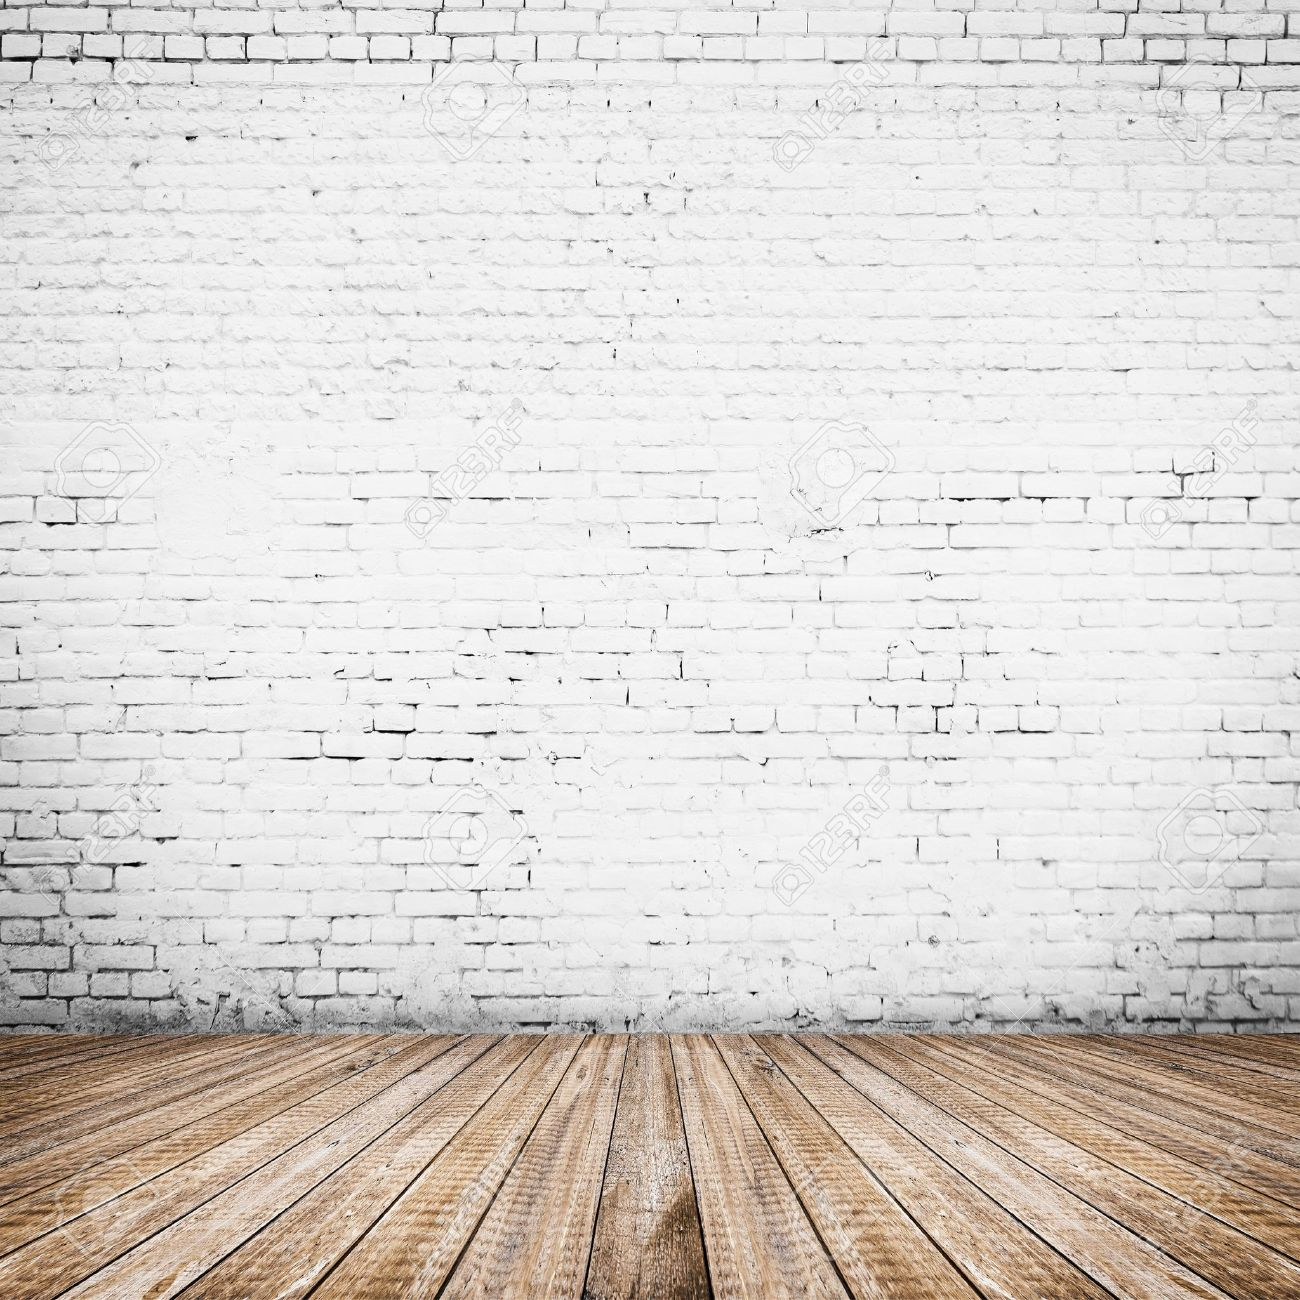 Room Interior Vintage With White Brick Wall And Wood Floor Stock Photo    25038345